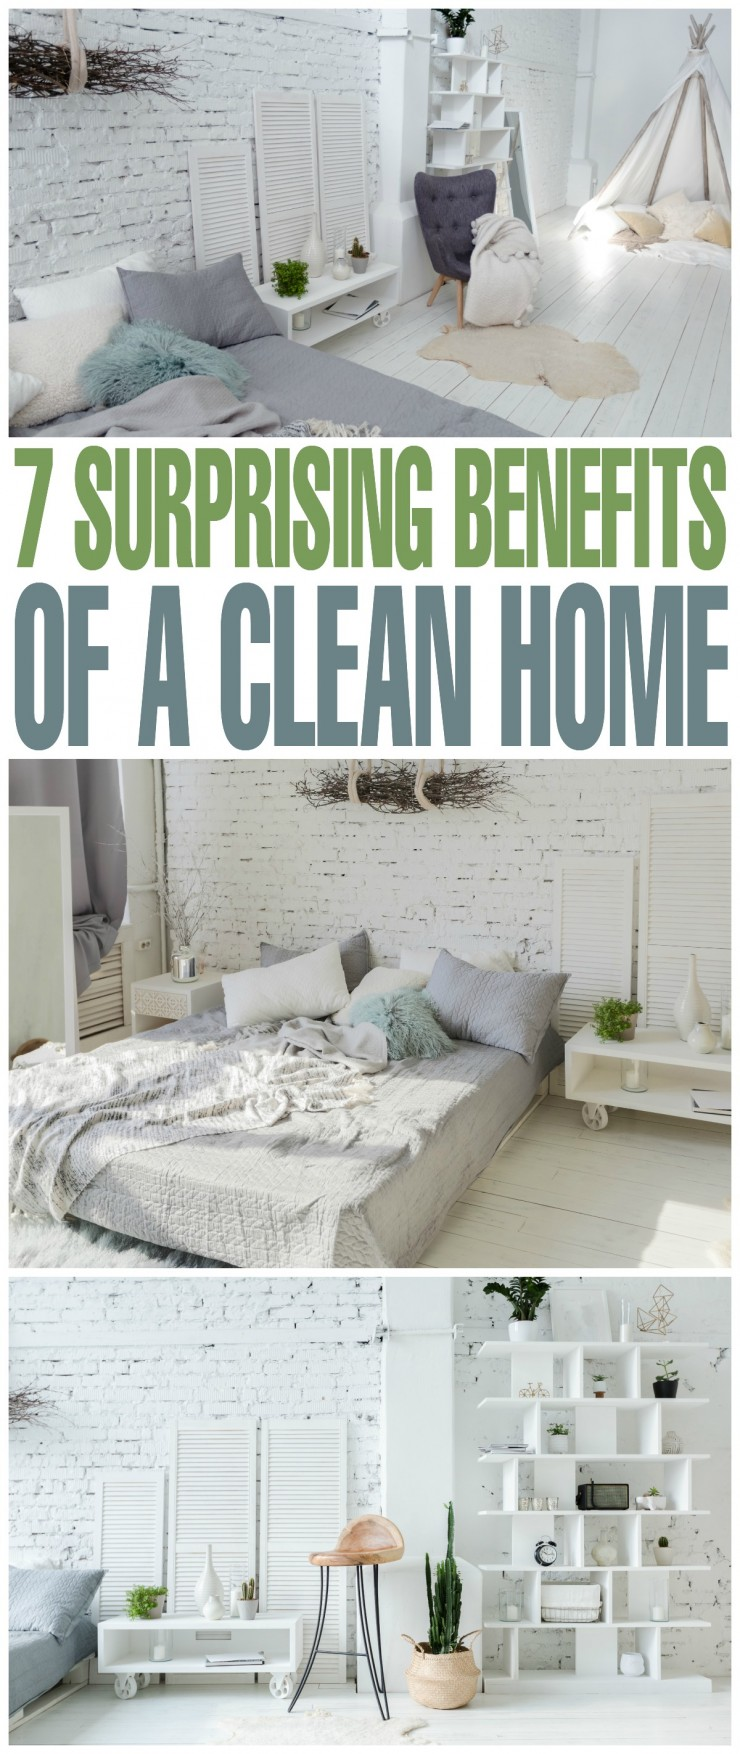 7 Surprising Benefits of a Clean Home